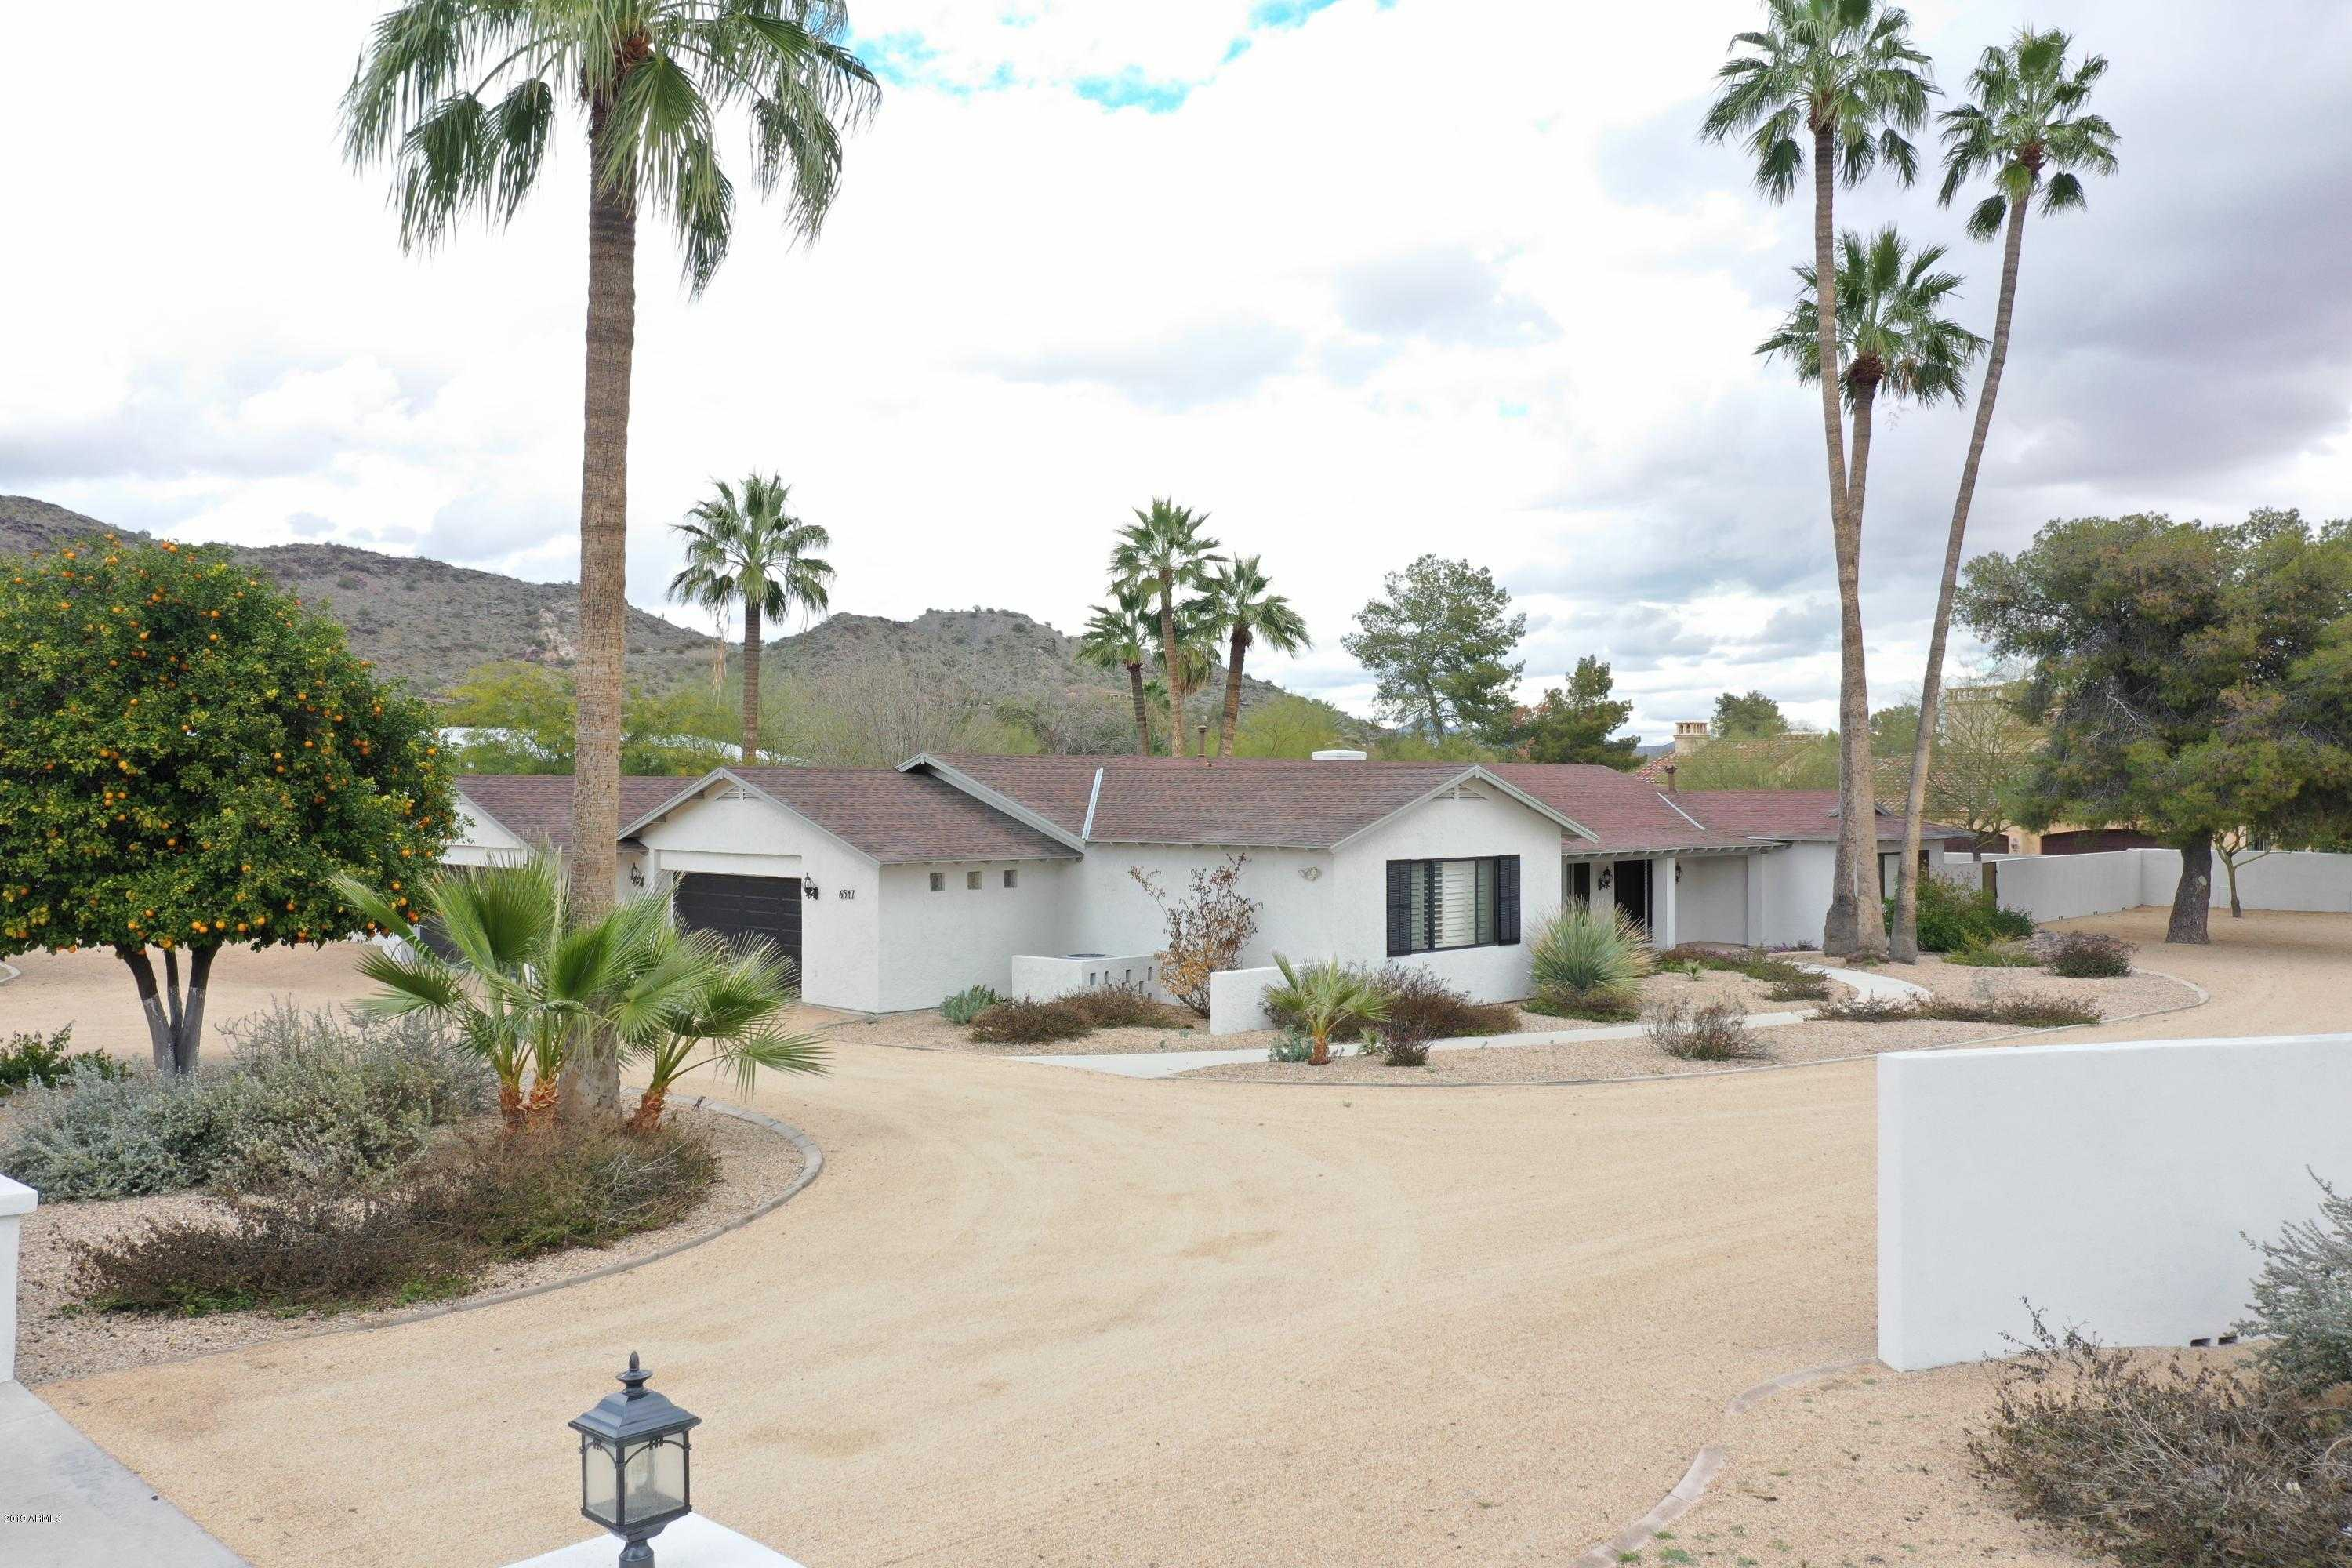 $1,180,000 - 3Br/3Ba - Home for Sale in Mountain View, Paradise Valley